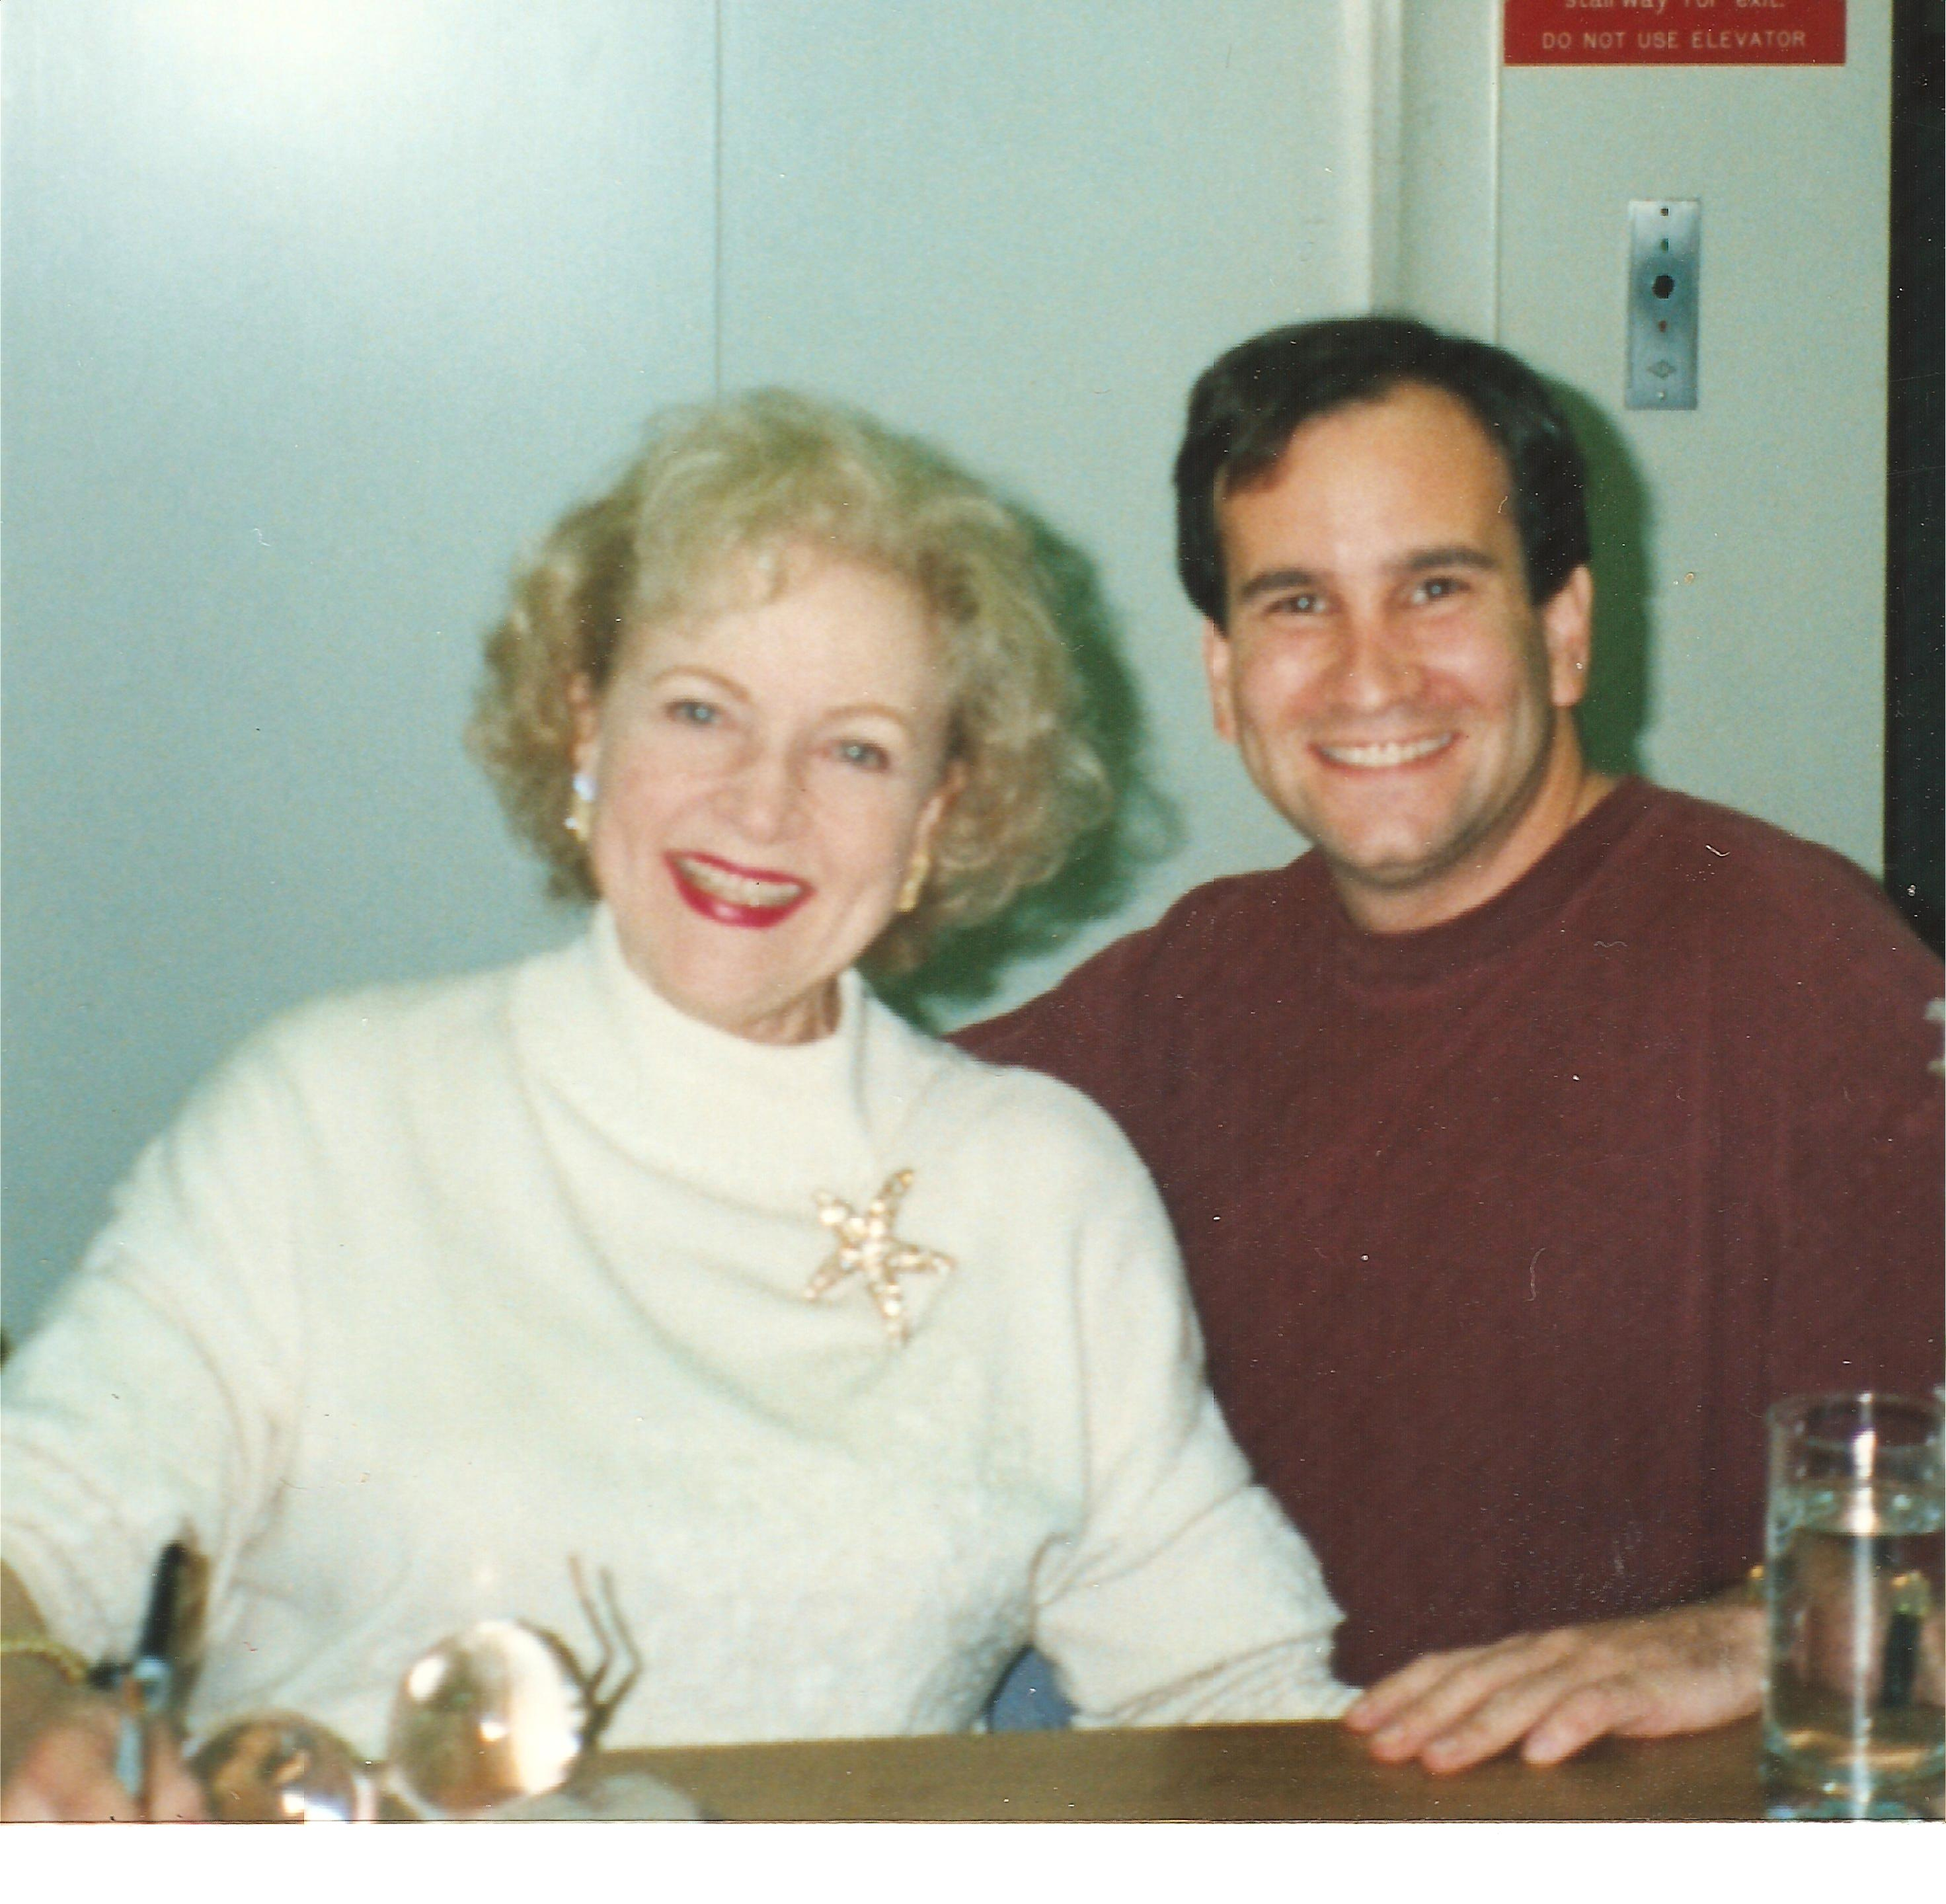 Betty White at book signing